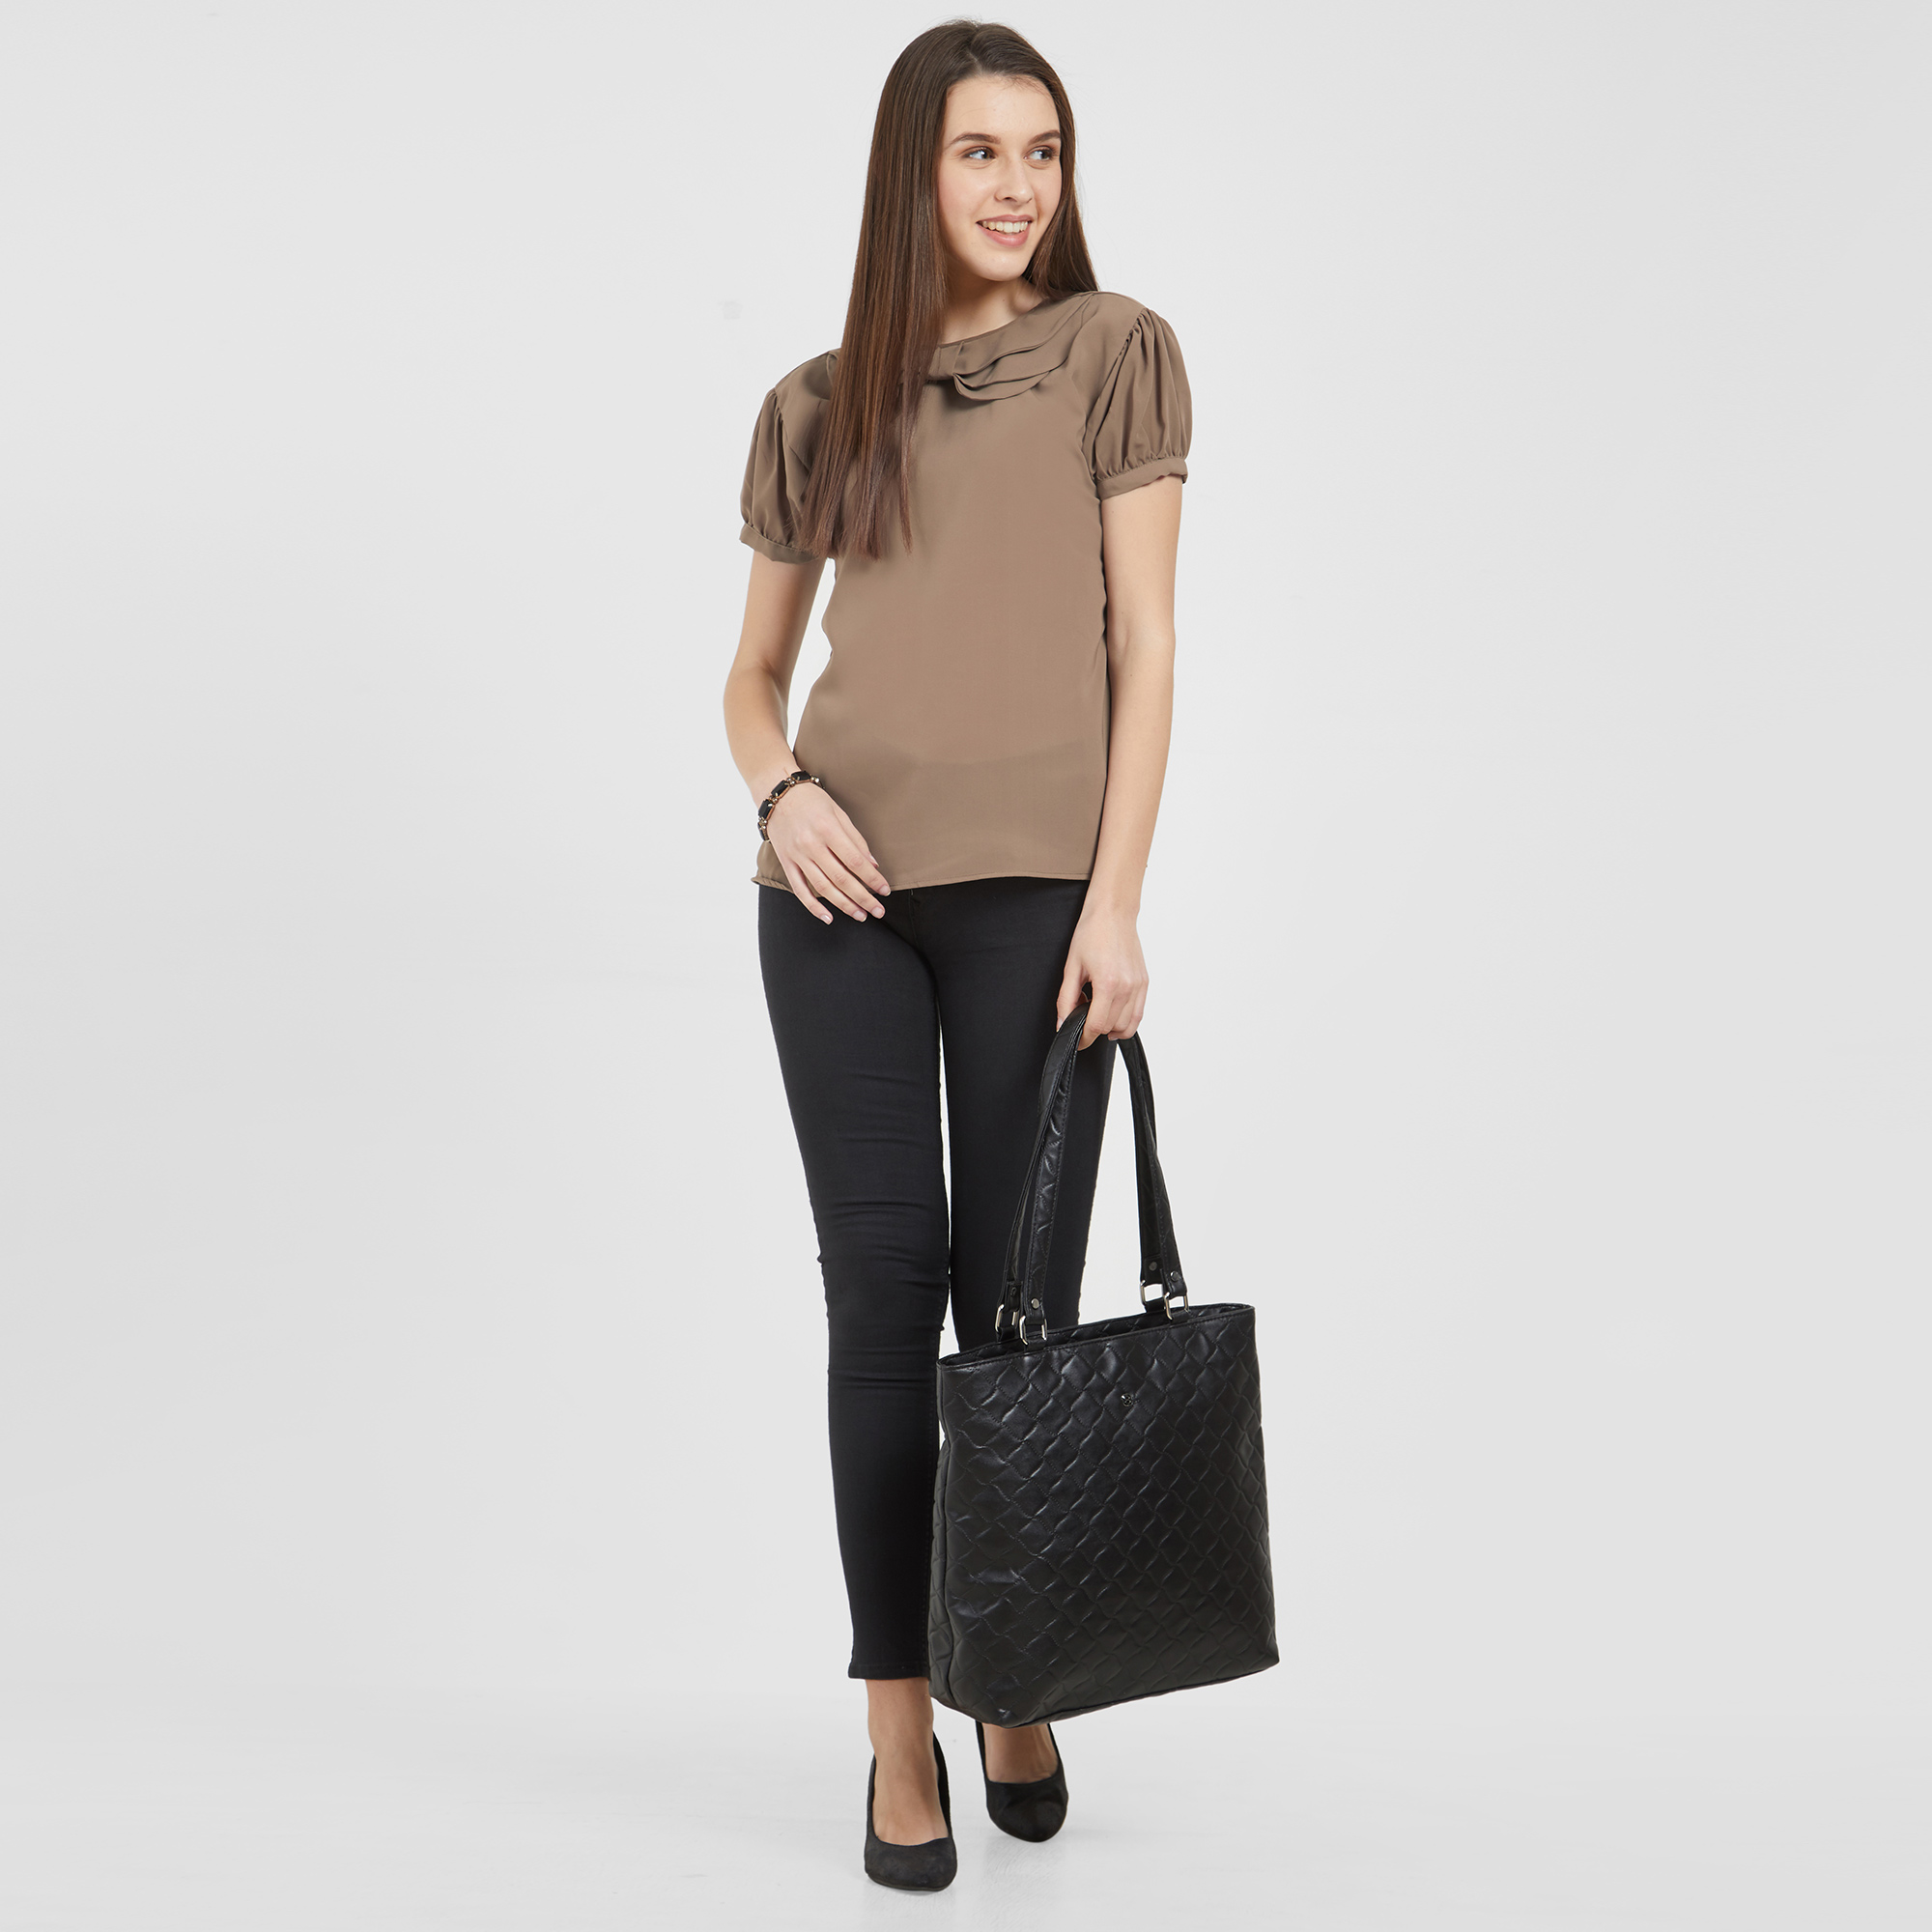 Lovely Light Brown Colored Casual Wear Crepe Top